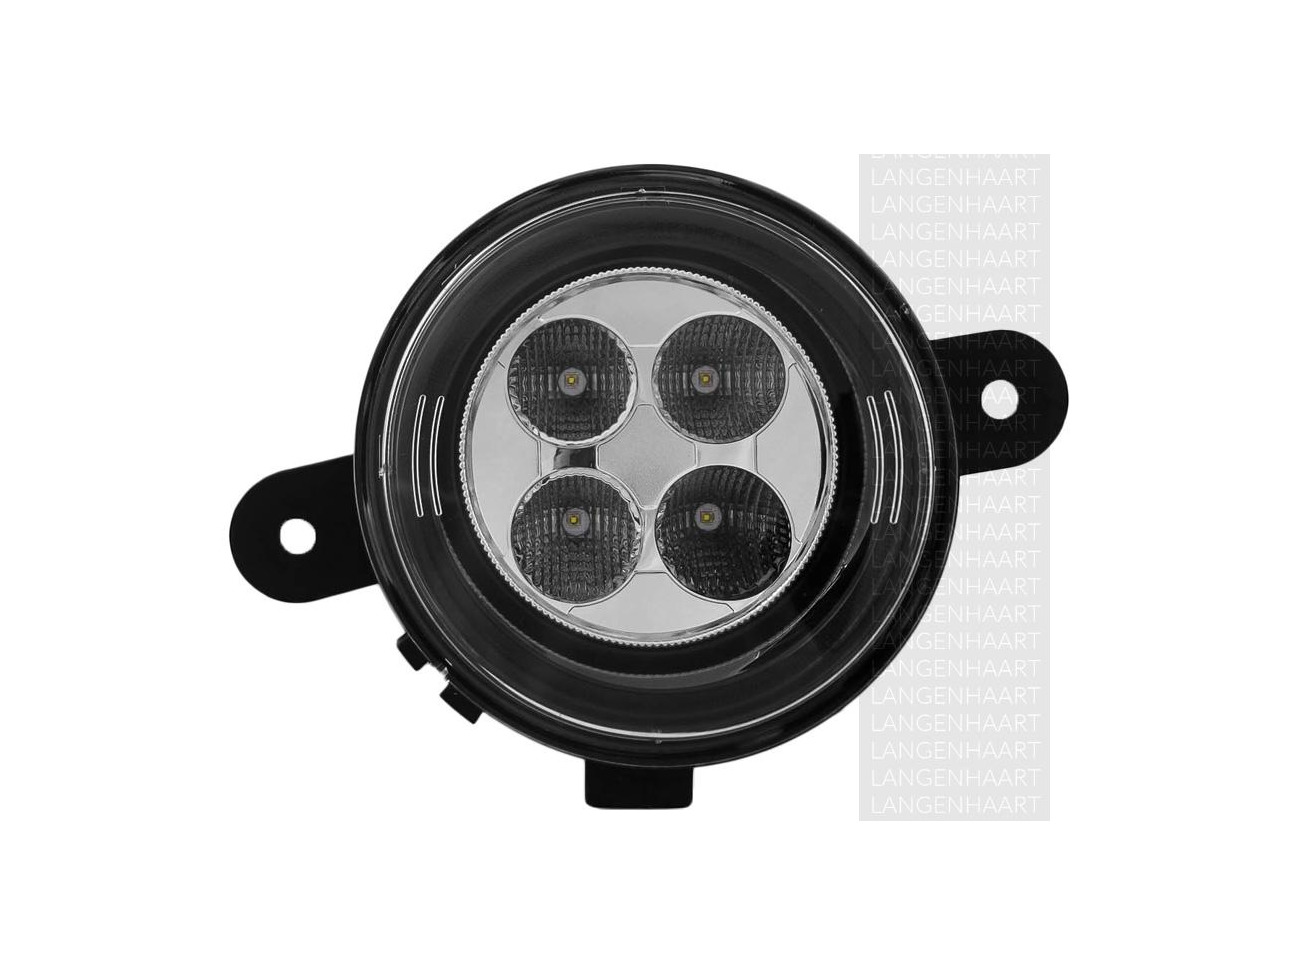 For Renault Twingo 2007-/> Front LED fog lights /& DRL pair left /& right